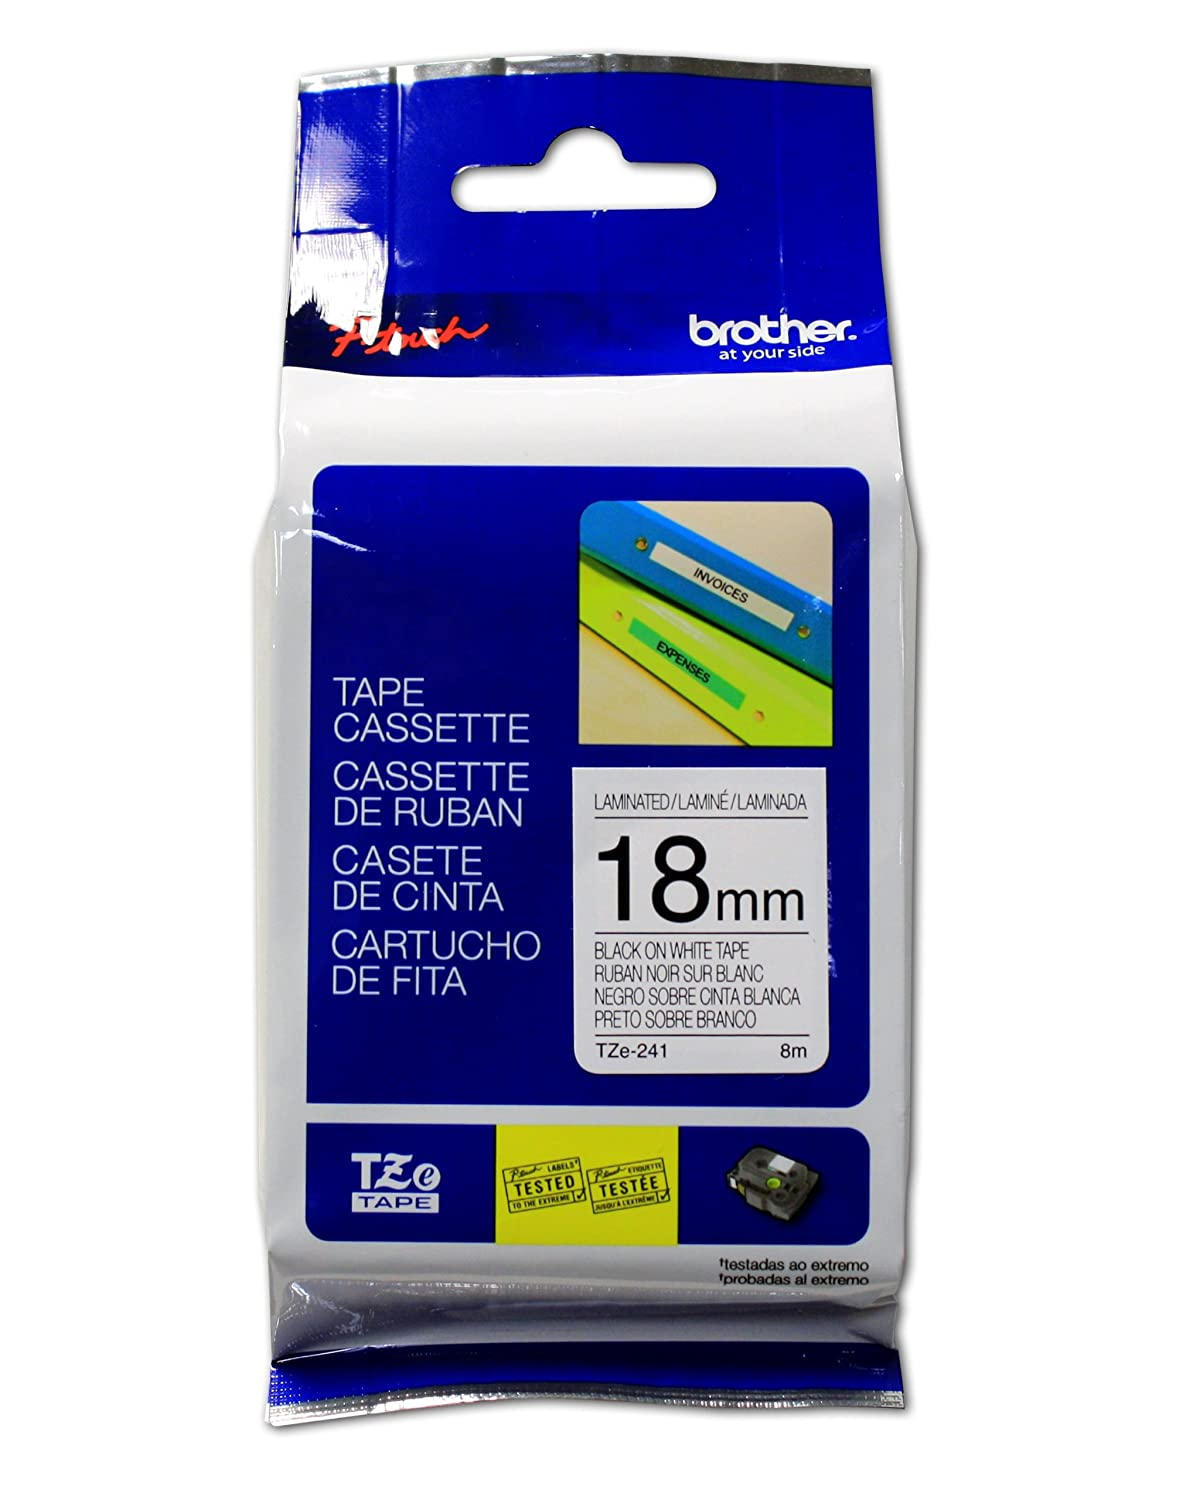 Brother TZE241 Genuine P-Touch Tape (18mm Black on White) Office Supplies